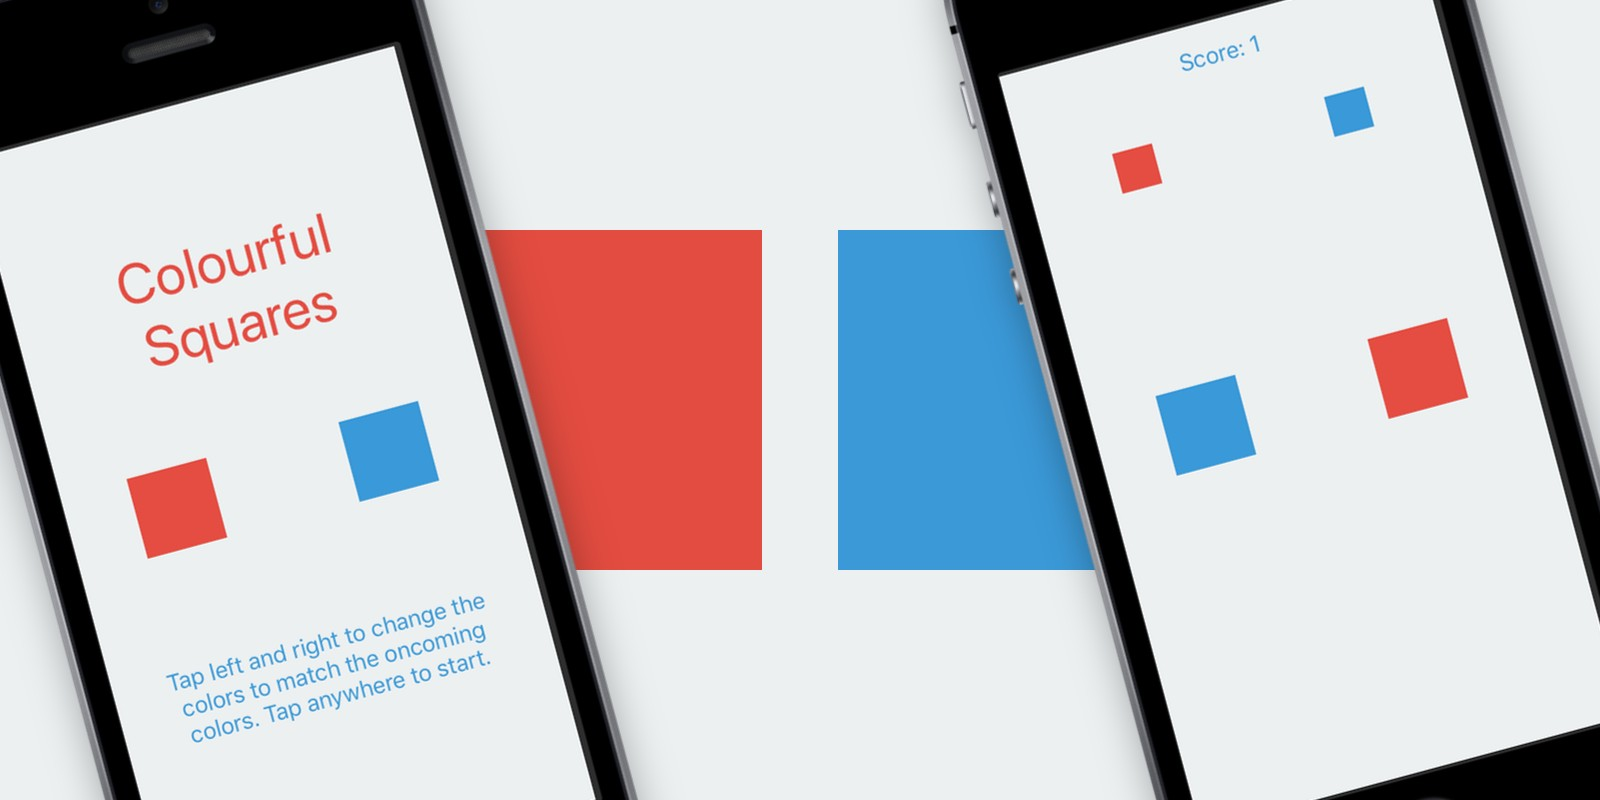 Colourful Squares - iOS Game Source Code